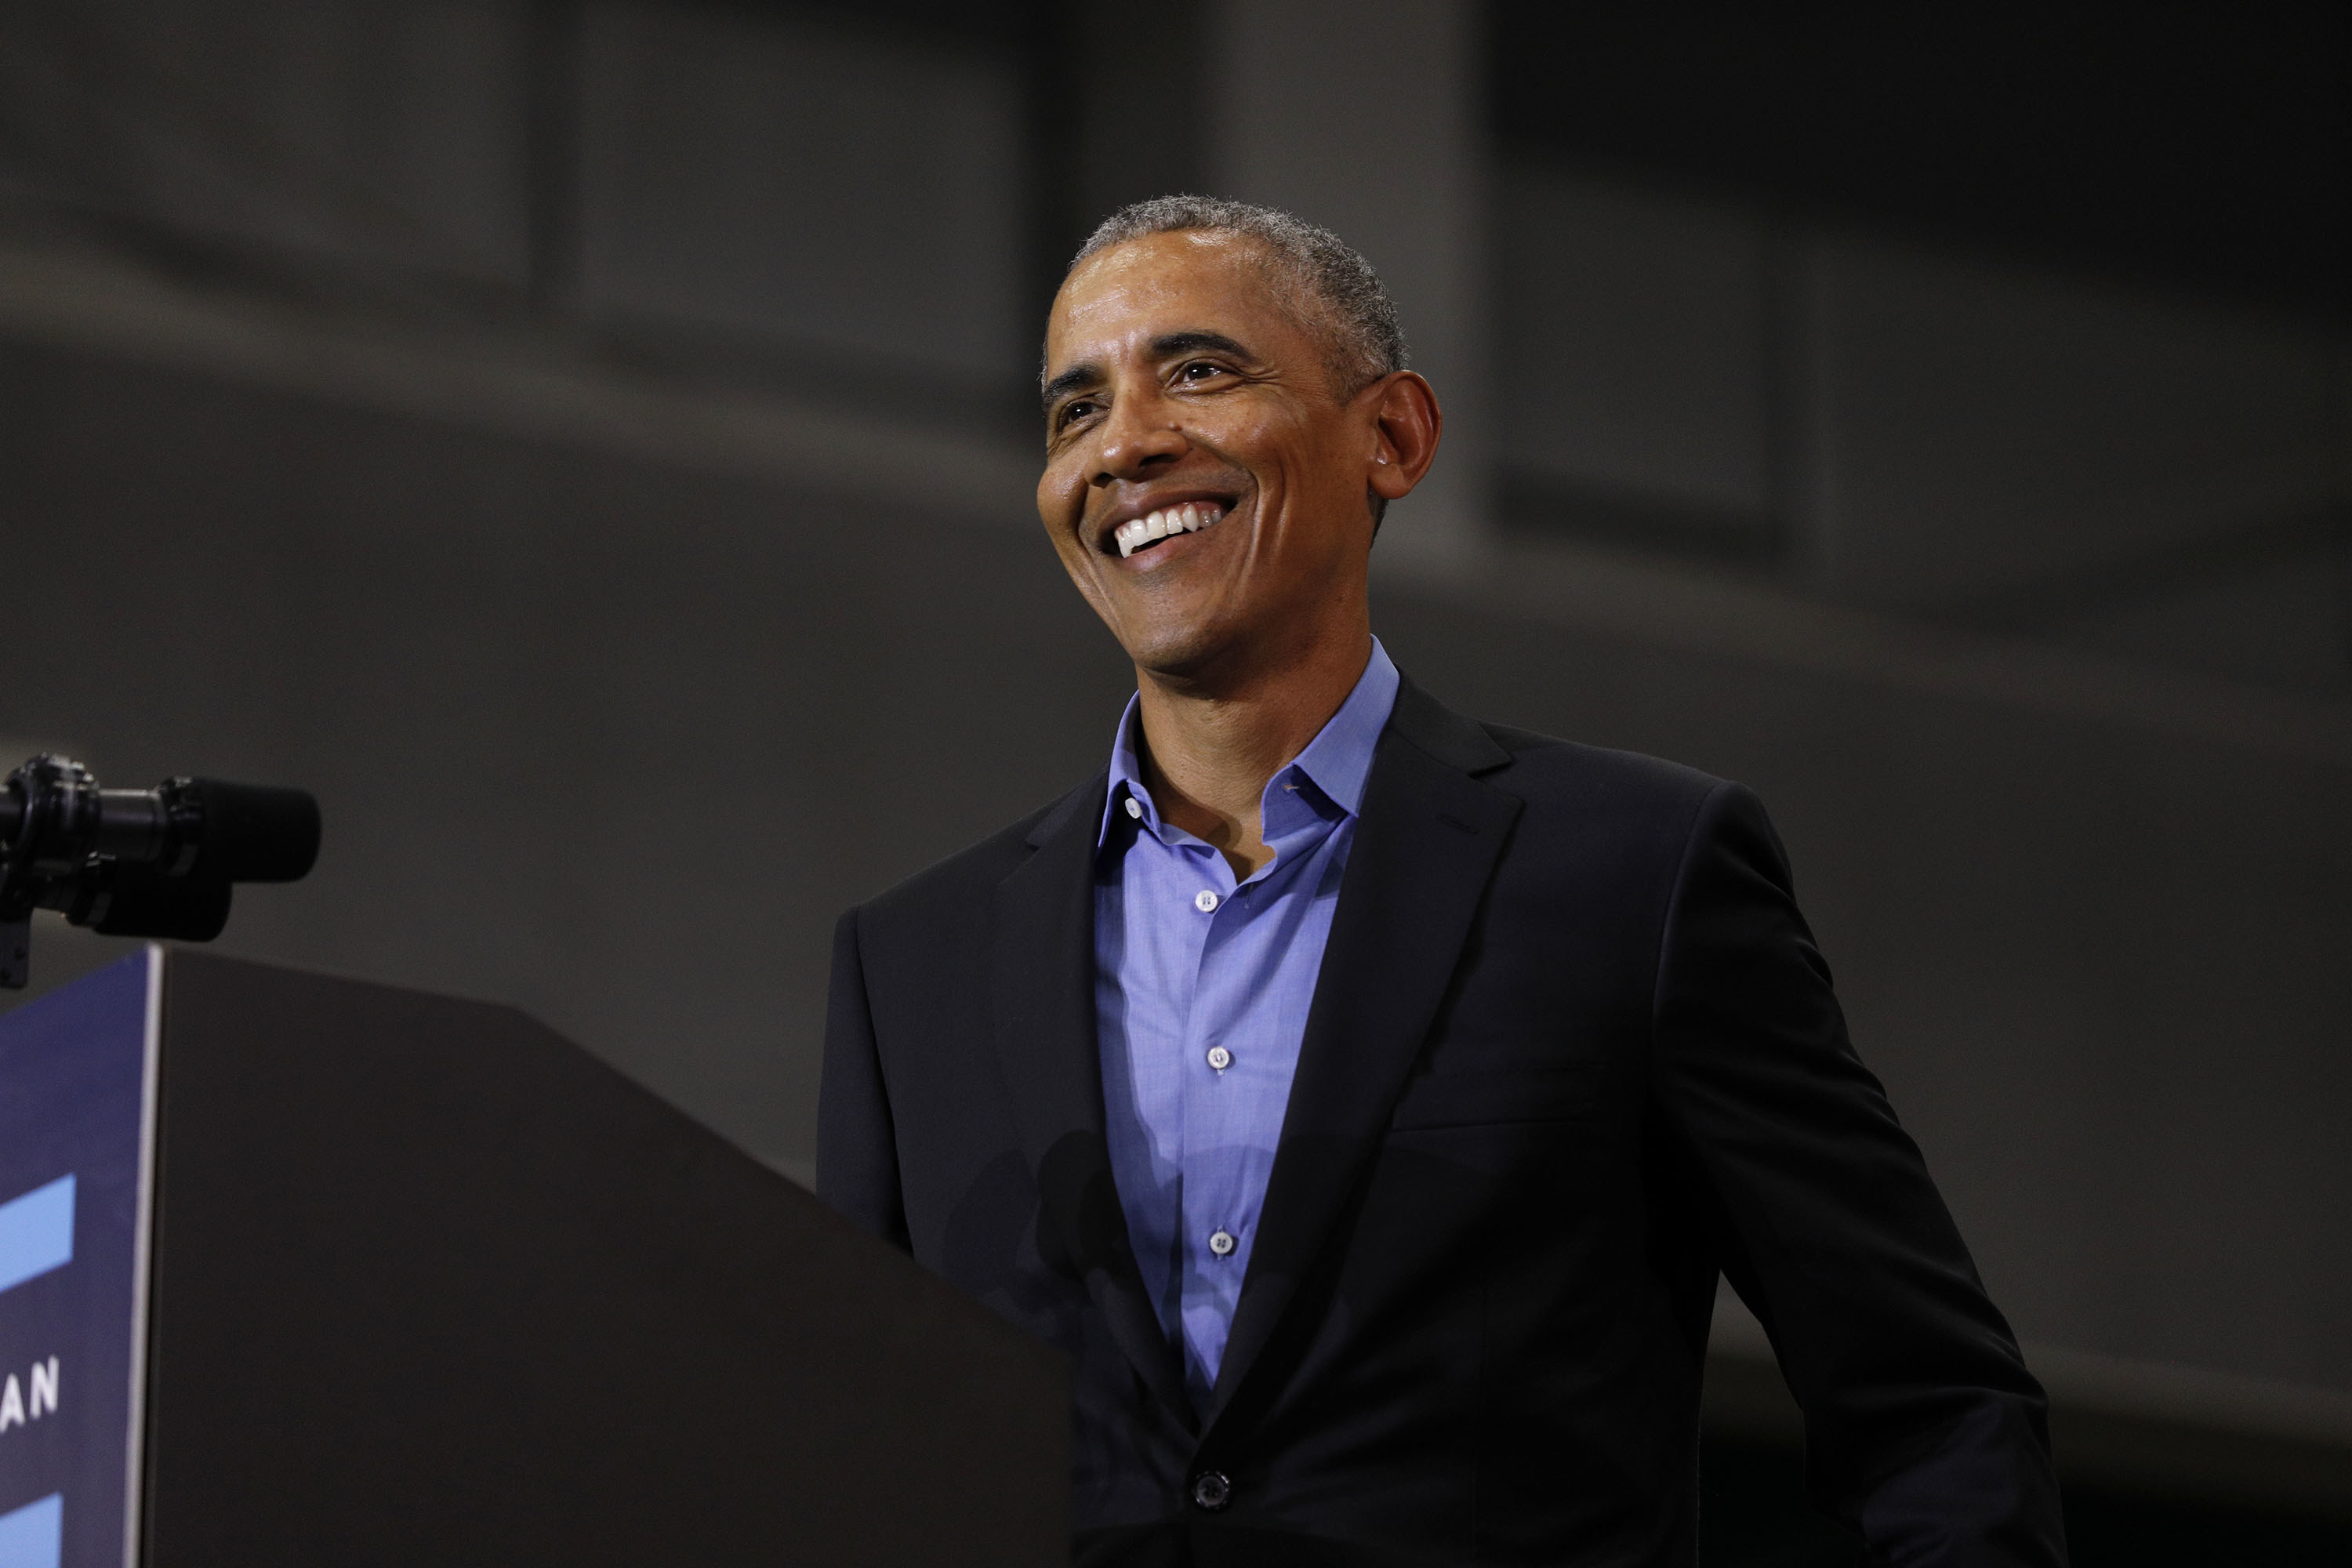 Obama speaks at a rally in 2018